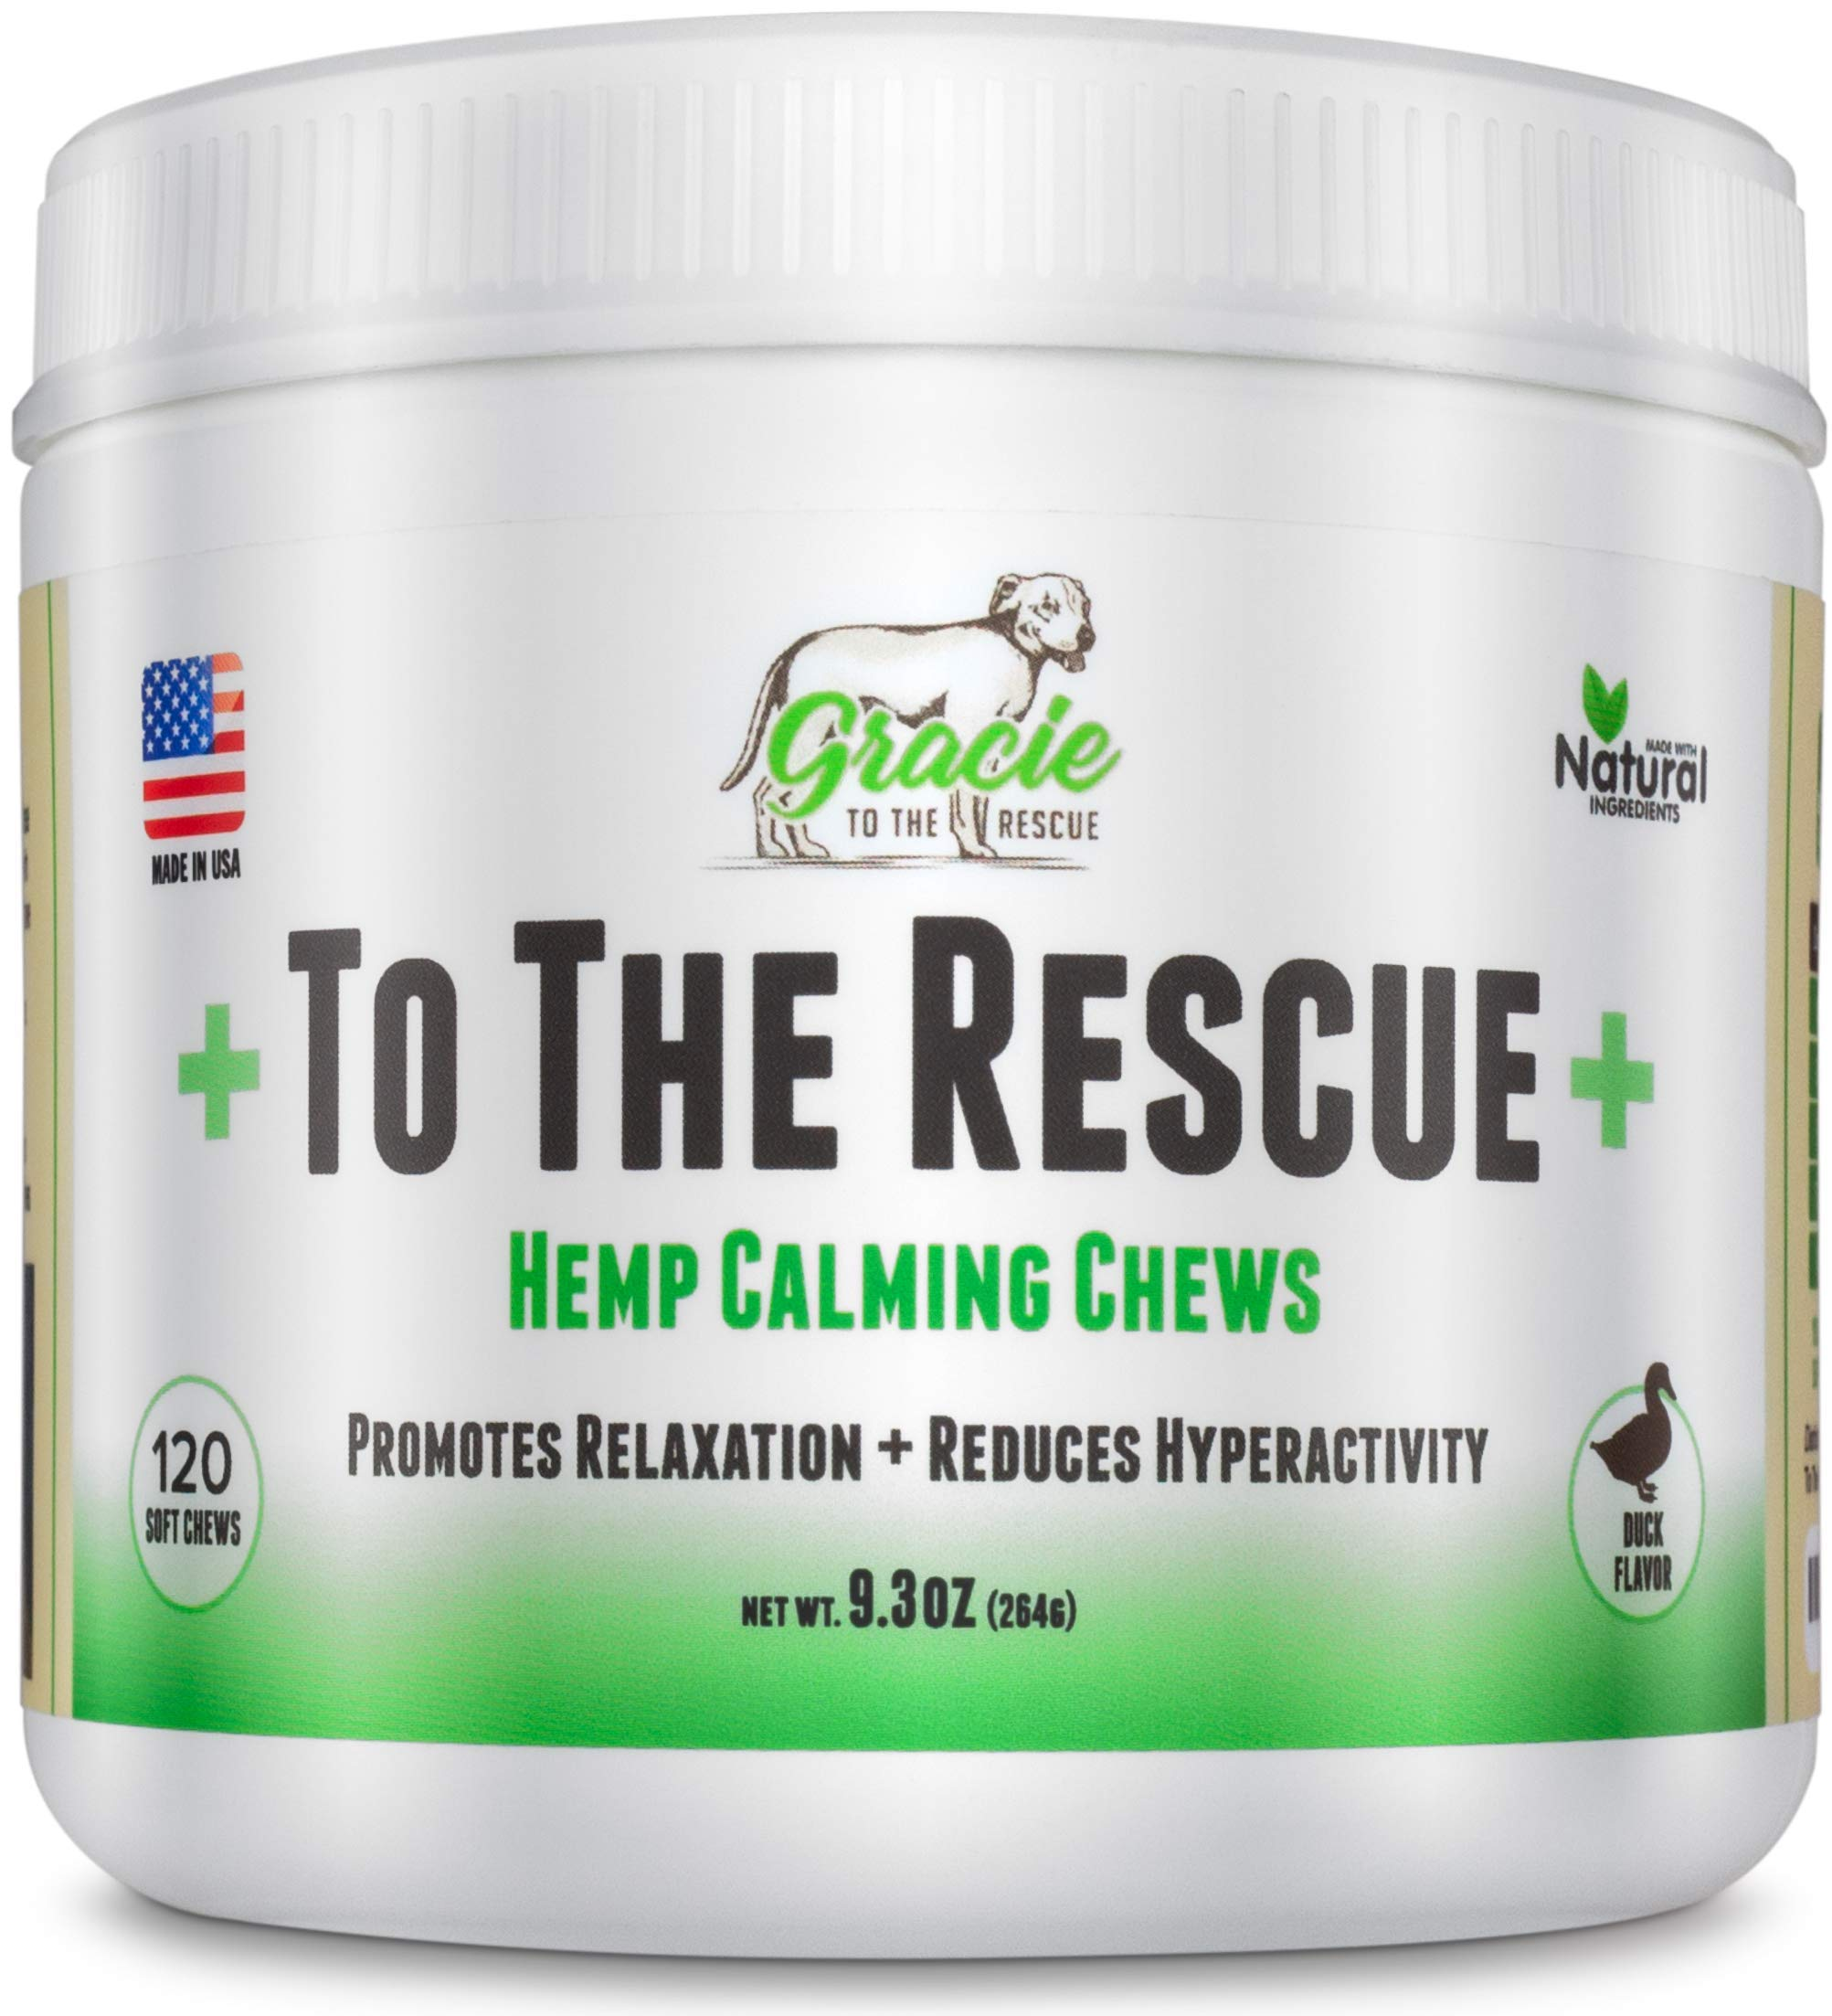 to The Rescue Calming Treats for Dogs | 120 Soft Chews Dogs -Treats for Anxiety Relief, Separation, Motion Sickness, Hyperactive Behavior, Composure Aid, Thunder Storms, Chewing & Barking by Gracie To The Rescue